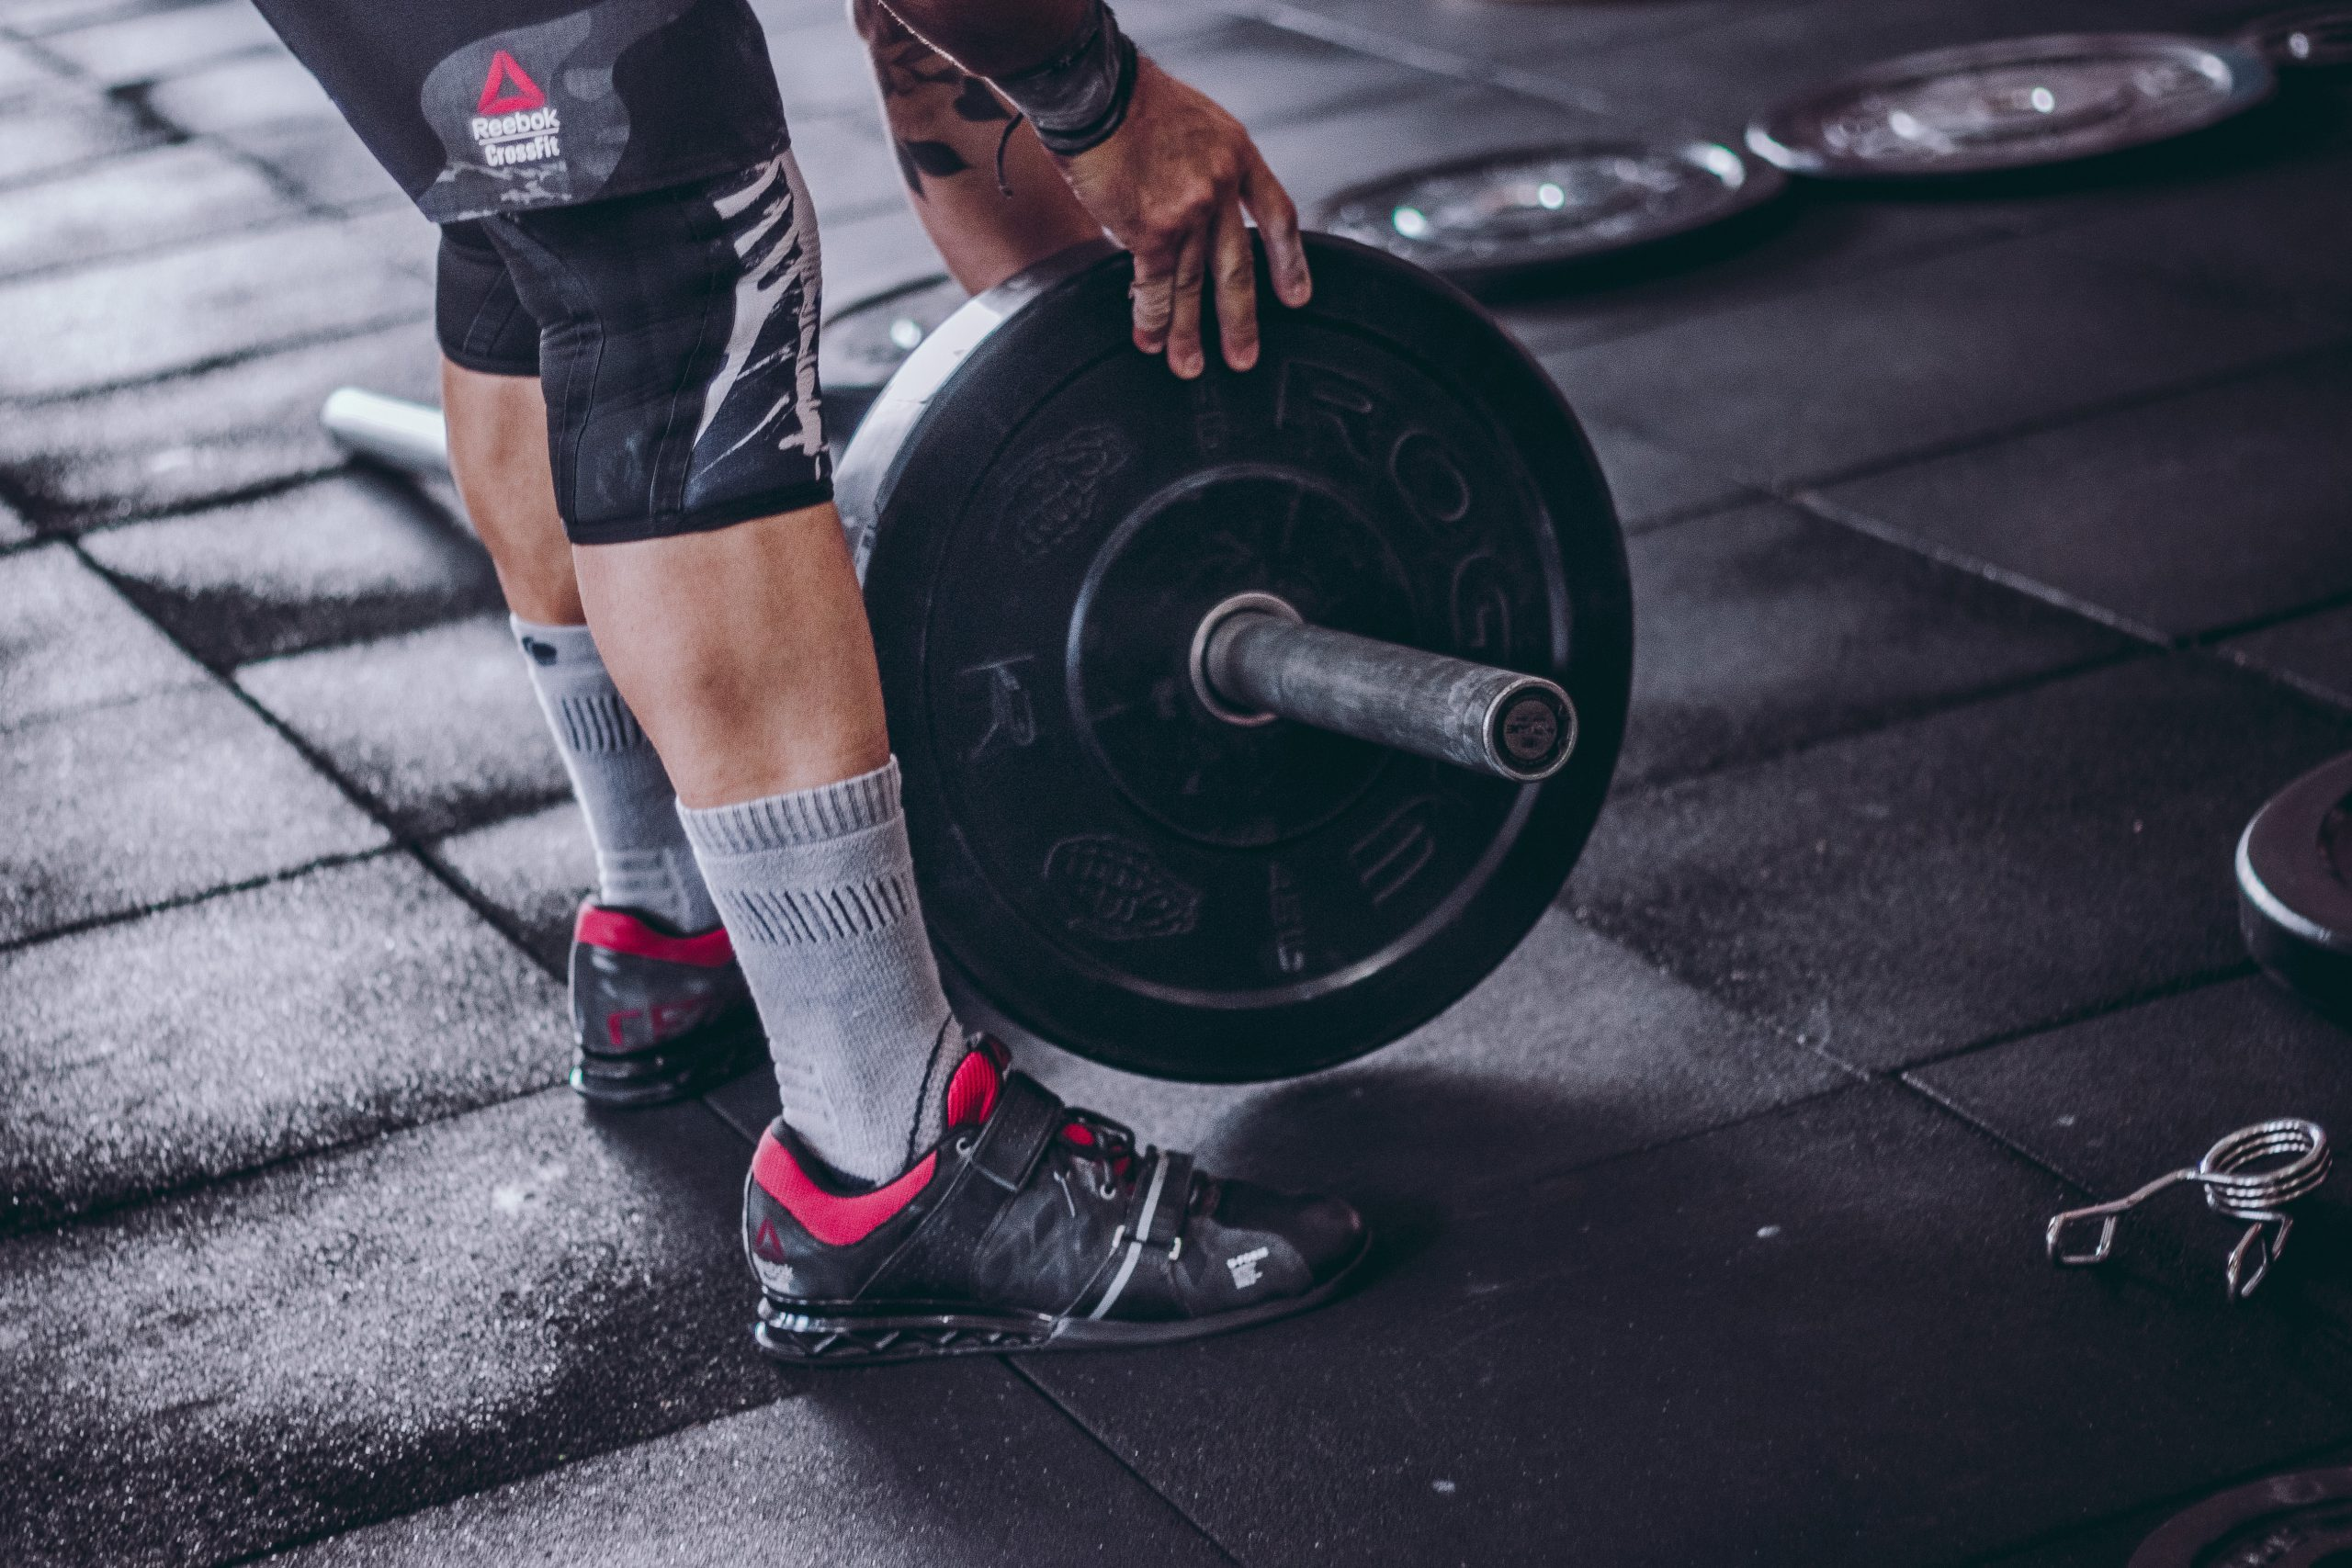 Biological male to compete in women's Olympic weightlifting